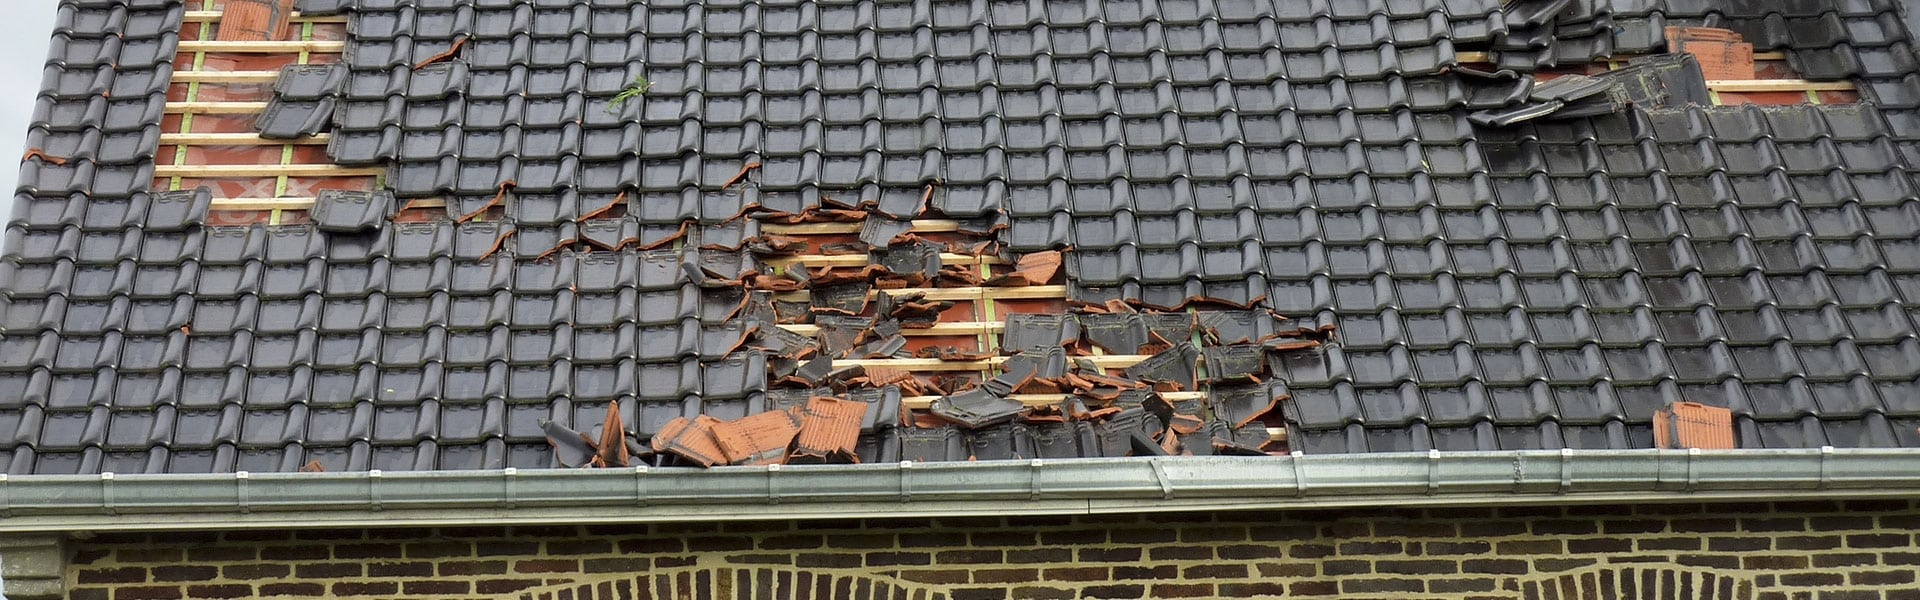 roofing-replacement-schaumburg